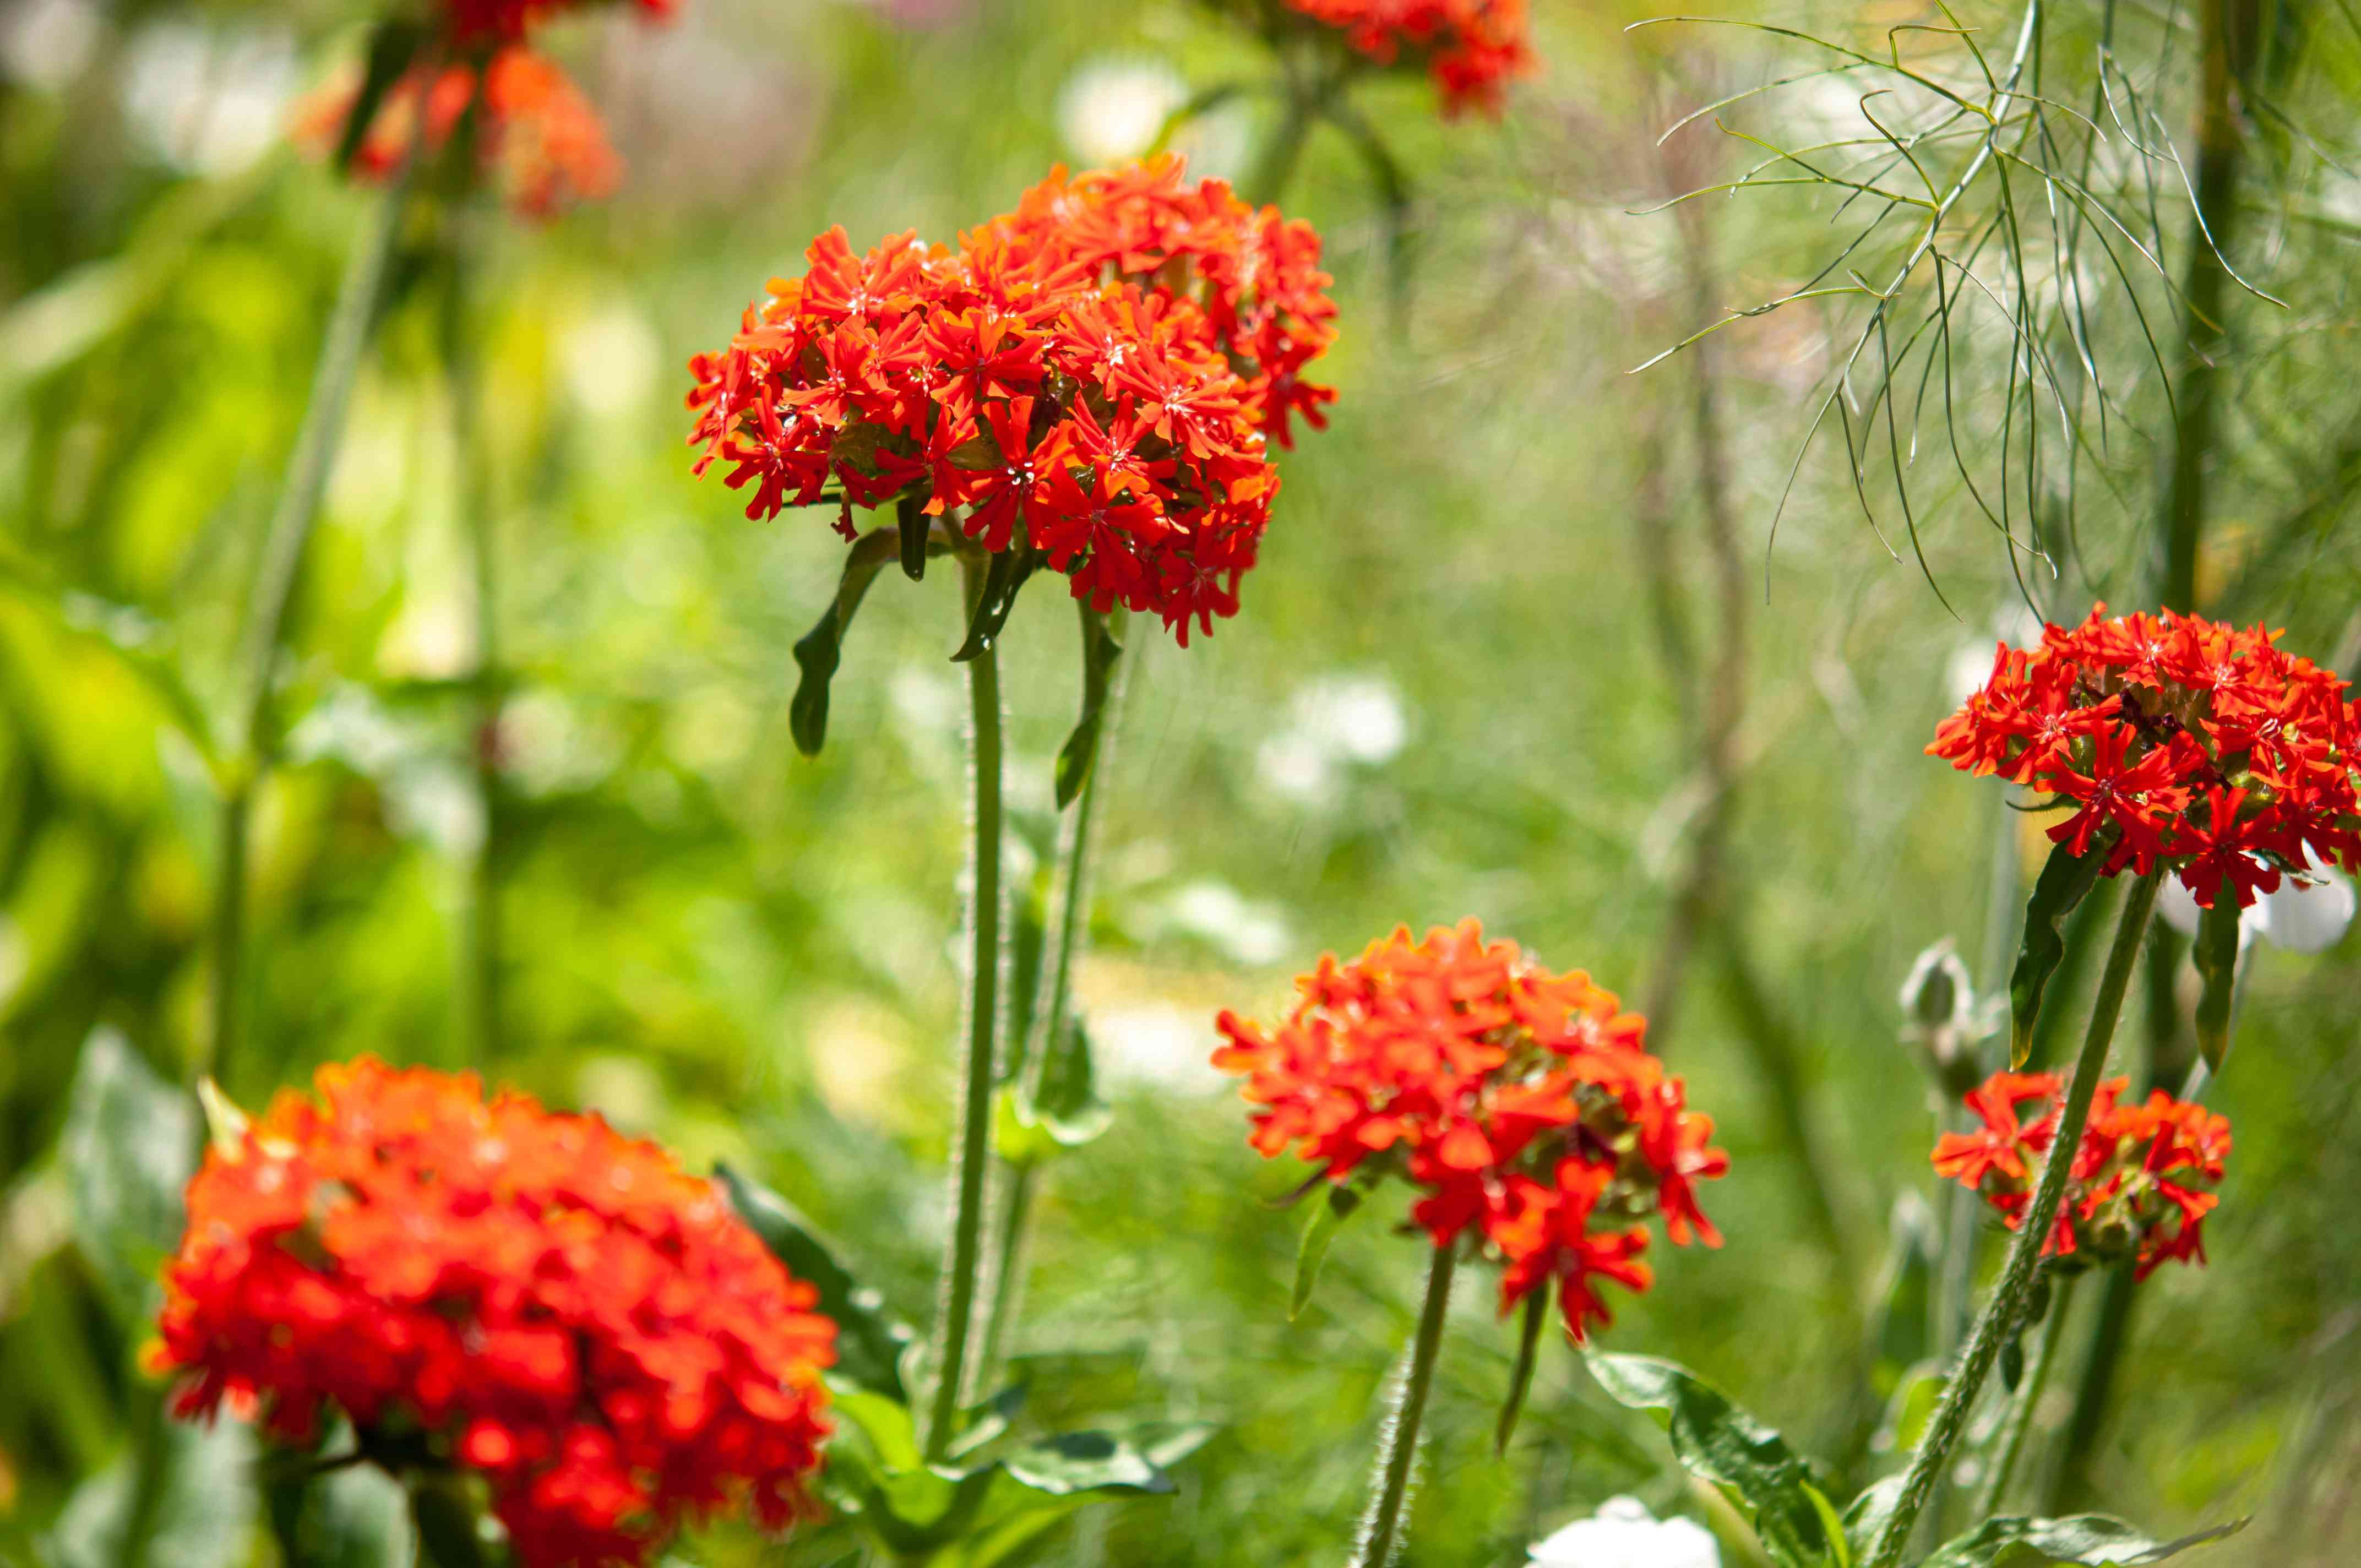 Maltese cross plants with orange-red flower clusters on single stems